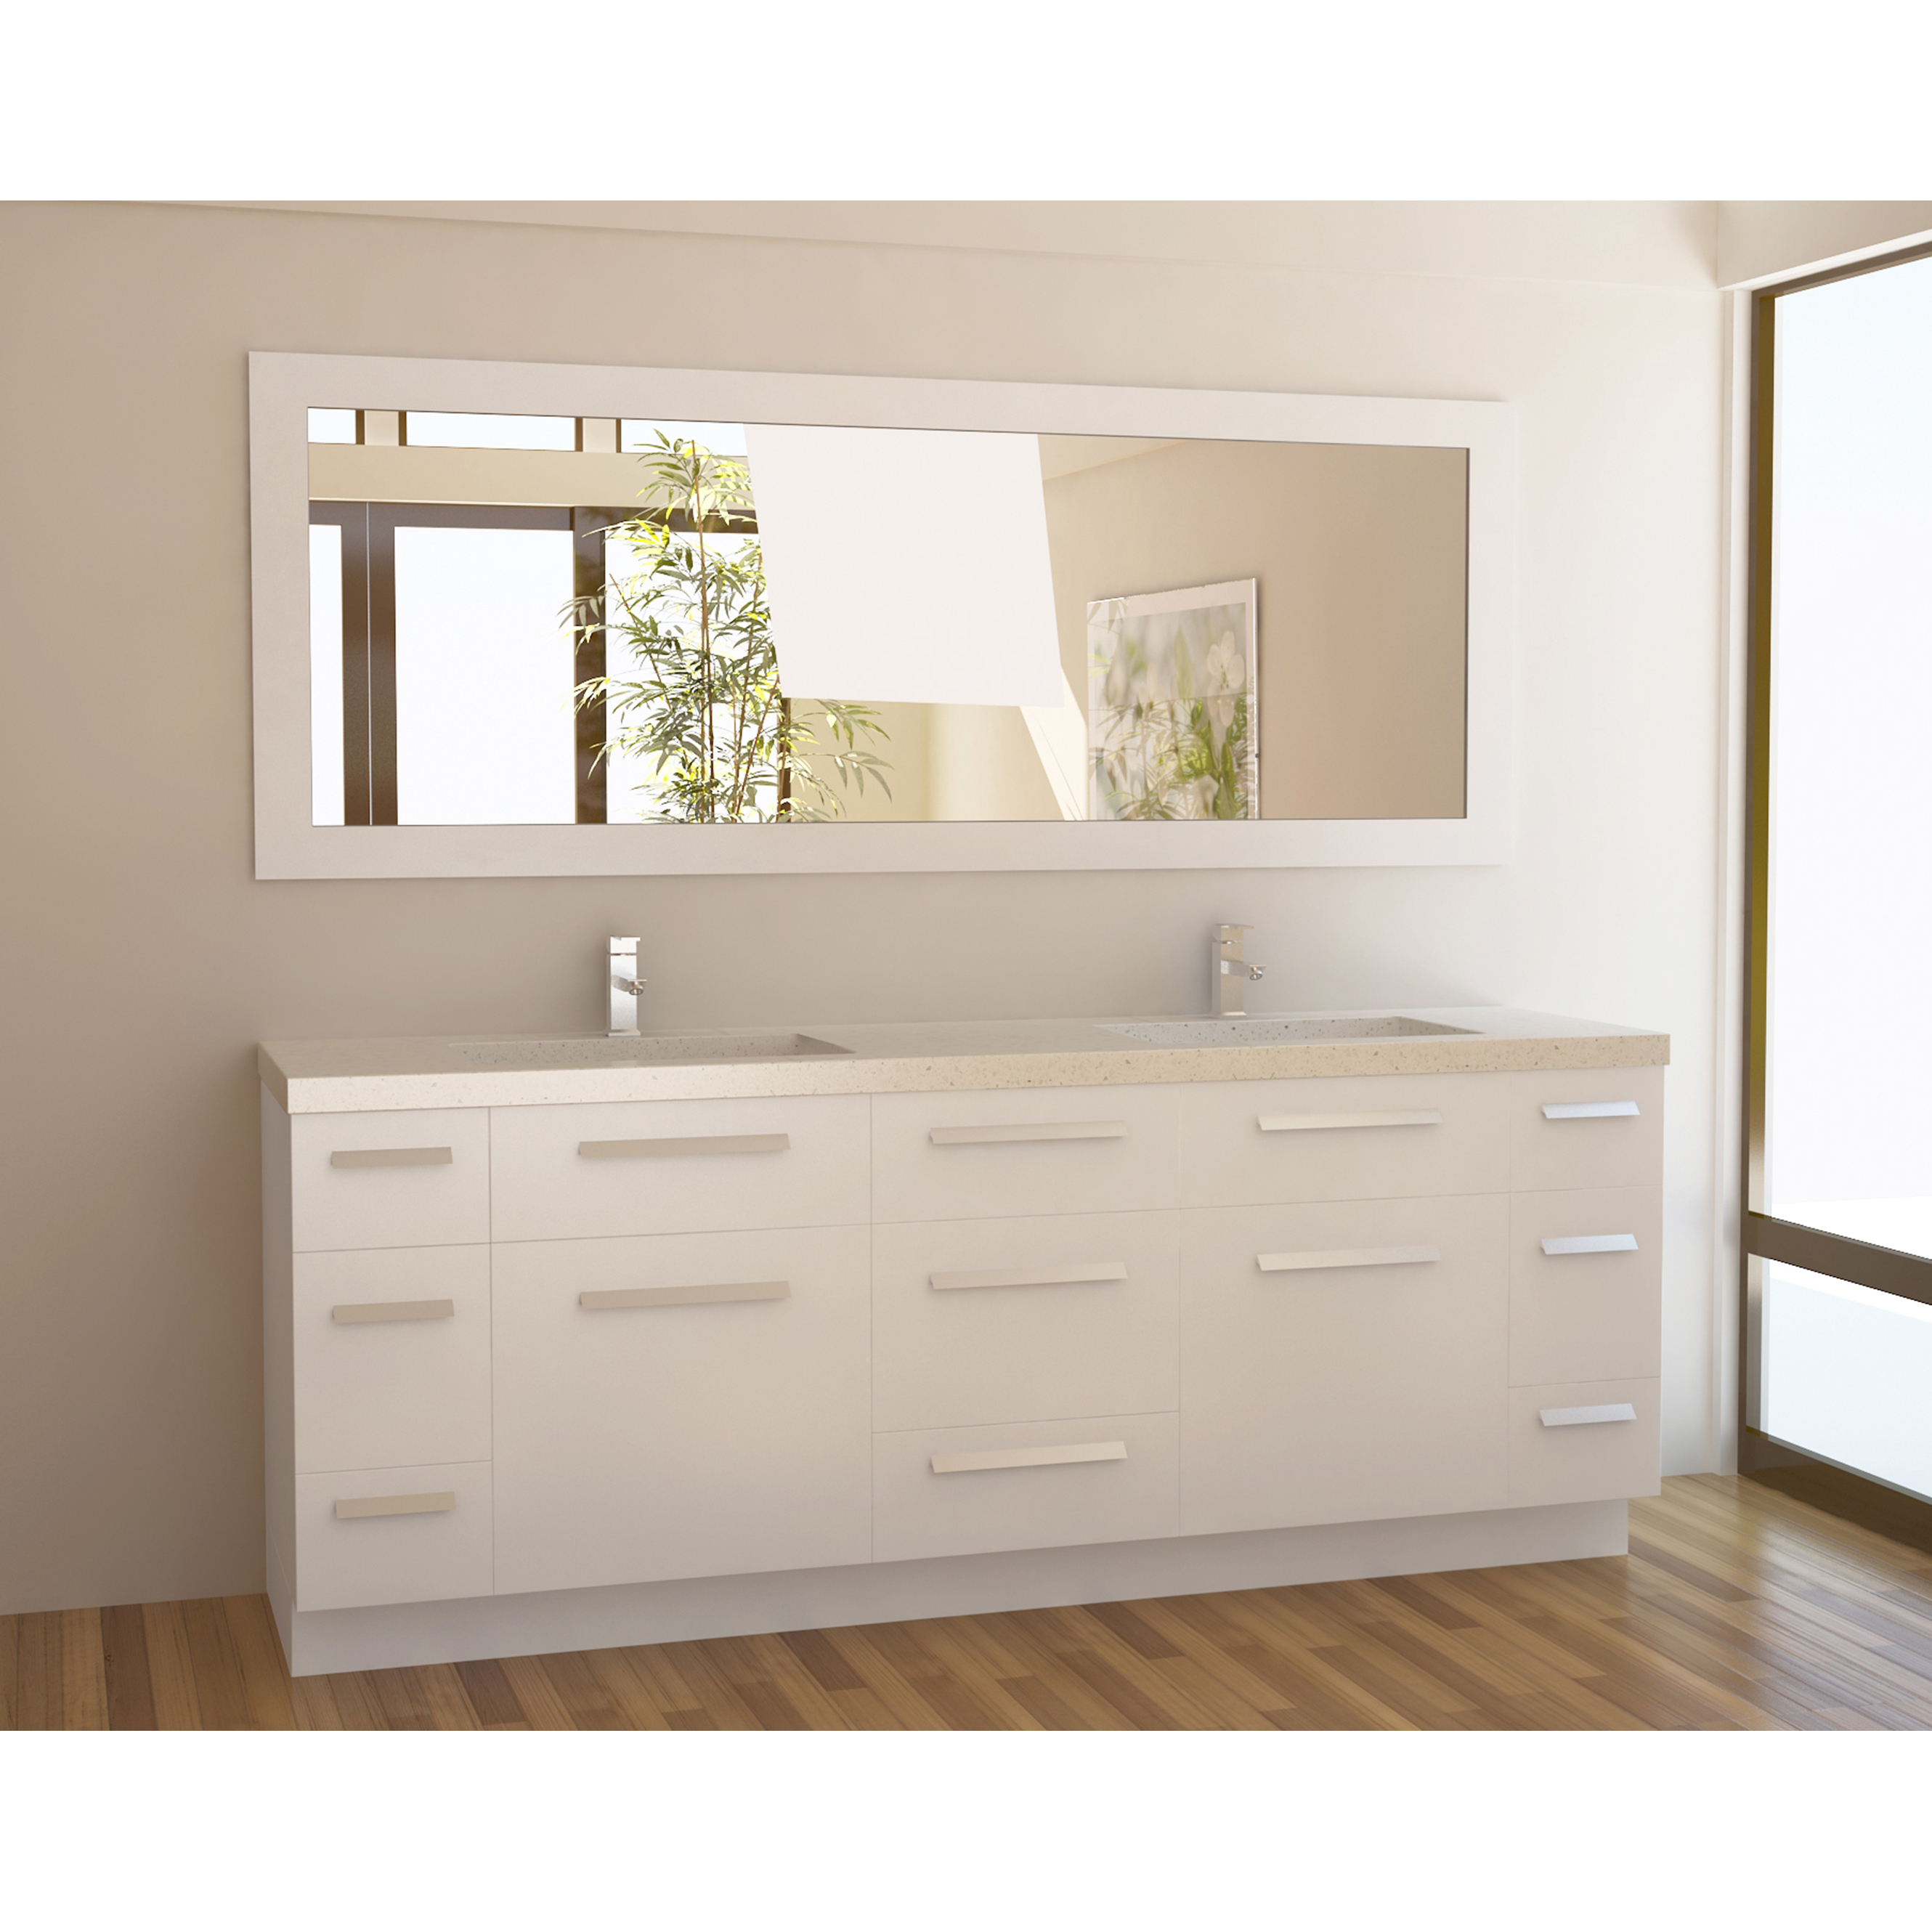 84 inch bathroom vanity the variants homesfeed - Modern bathroom vanity double sink ...